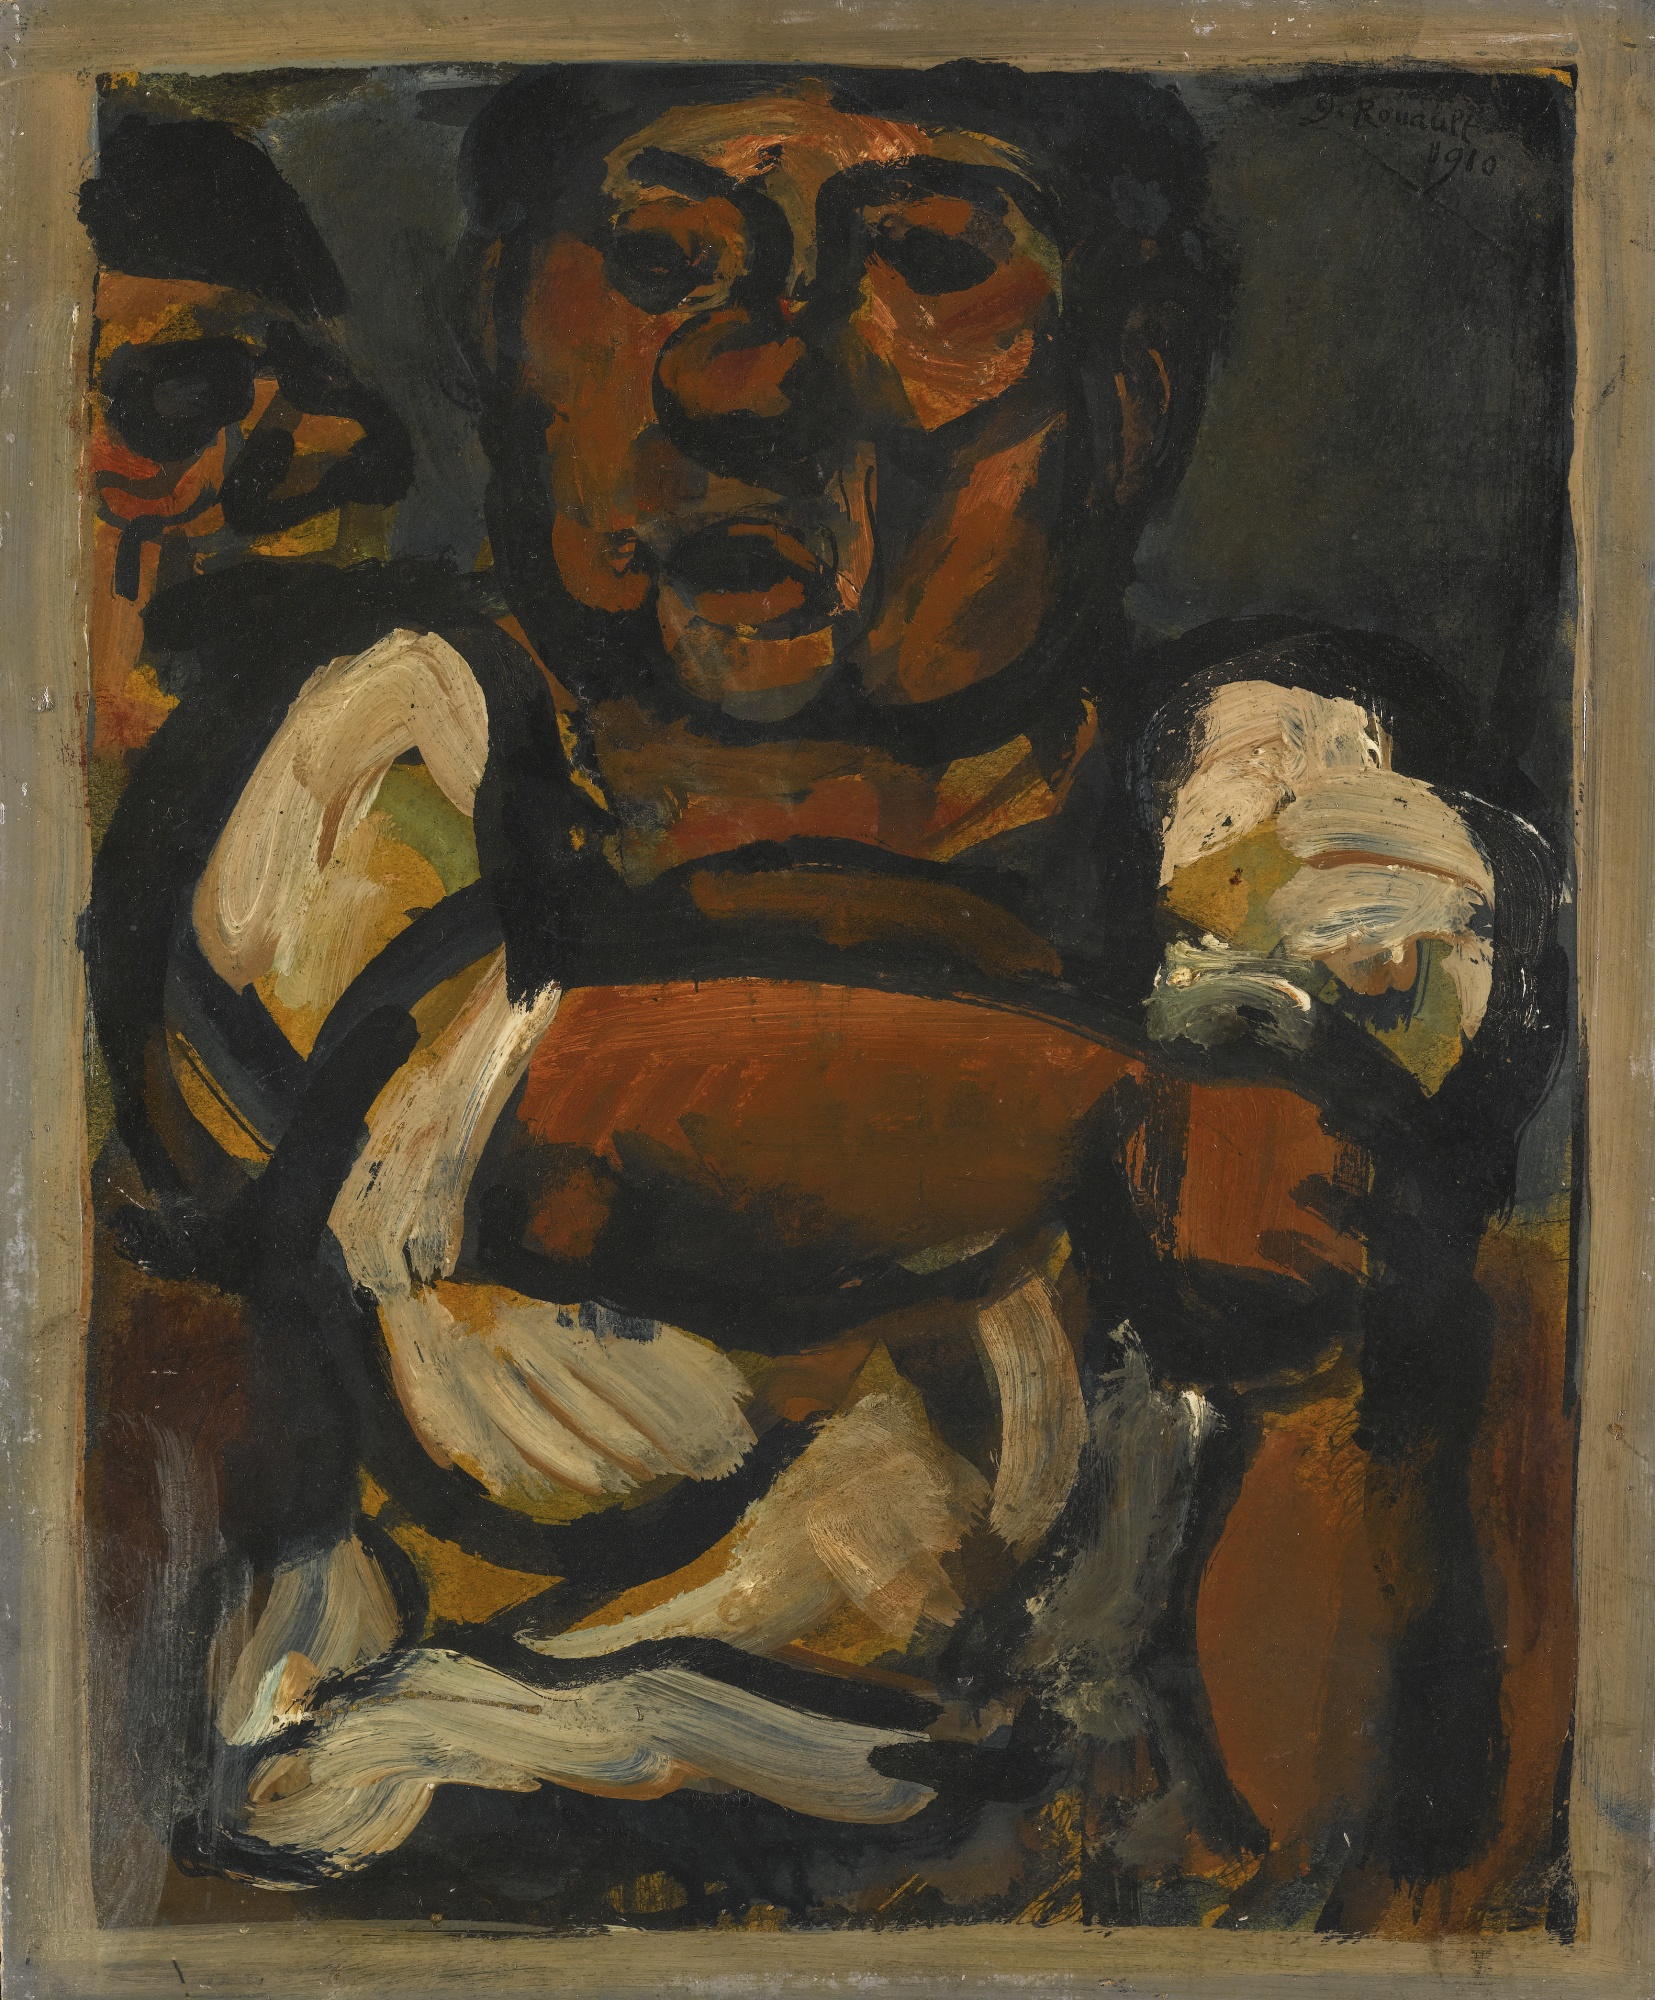 Georges Rouault-Fier A Bras-1910